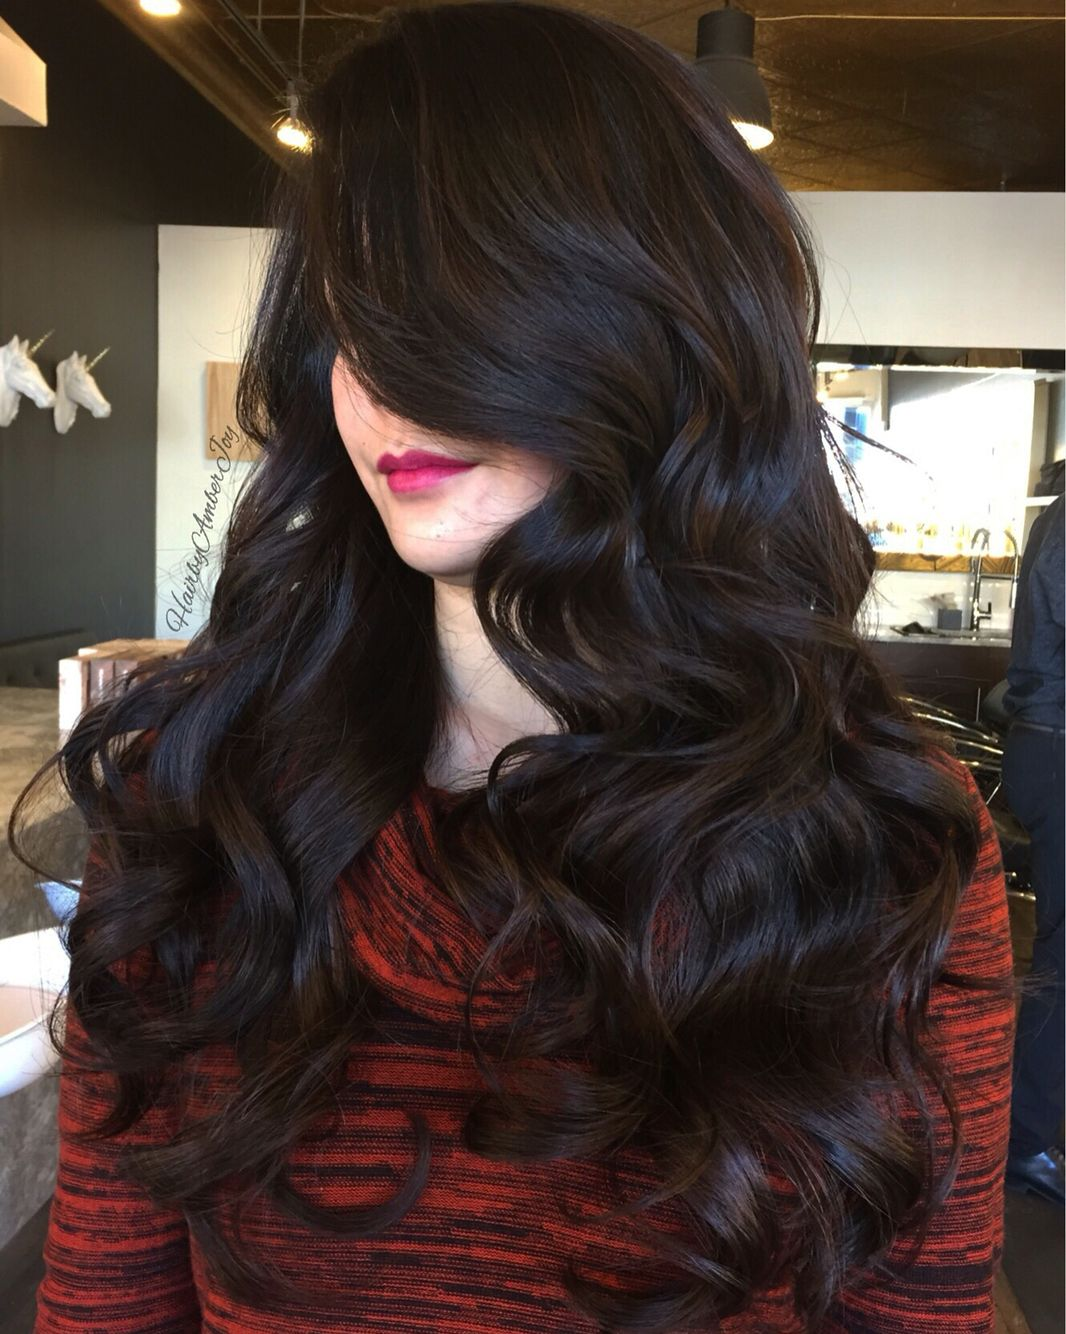 Chic And Stylish Hairstyles For Long Curly Hair